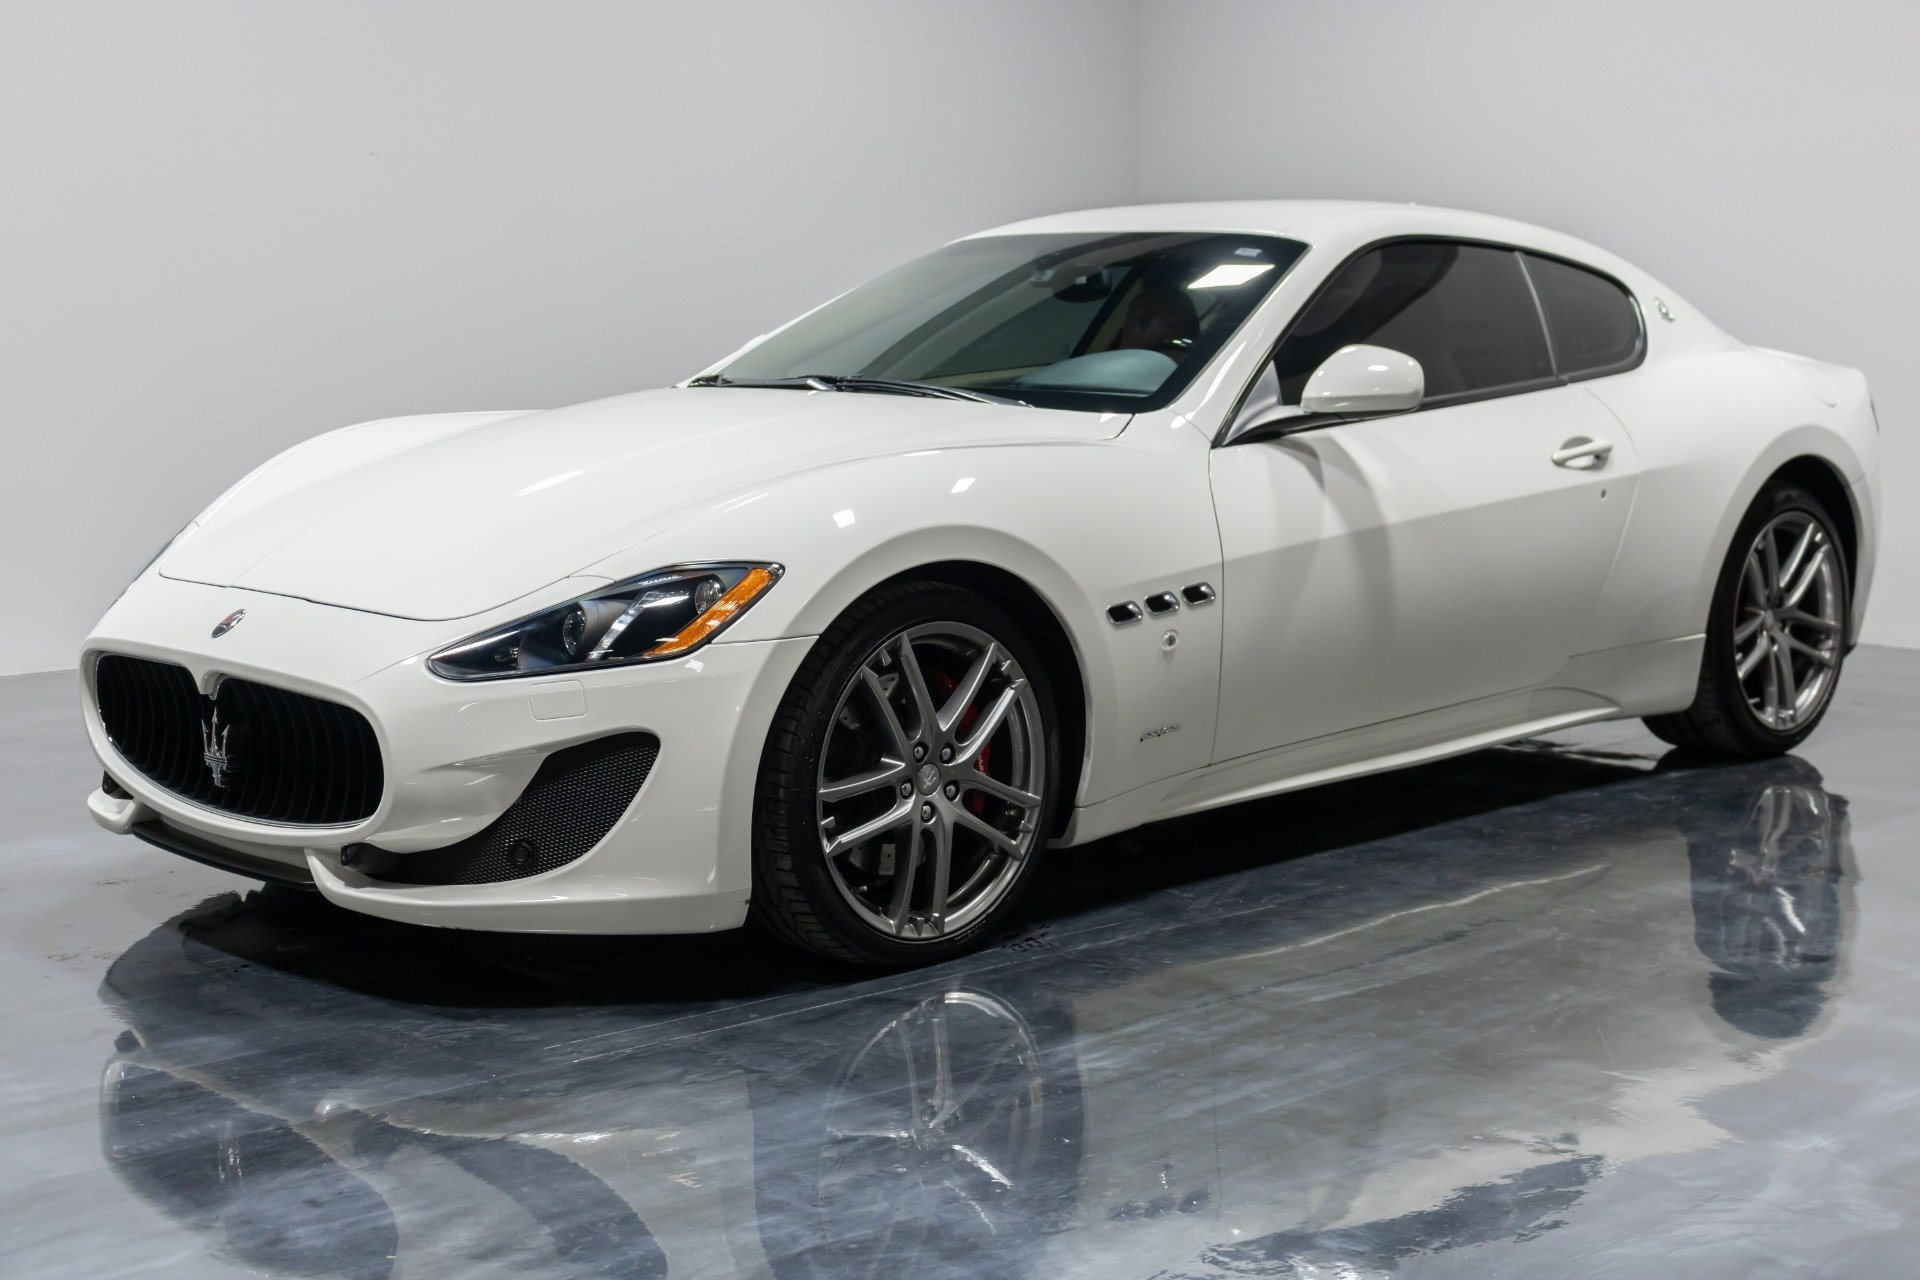 Used 2015 Maserati GranTurismo Sport for sale Sold at Perfect Auto Collection in Akron OH 44310 1